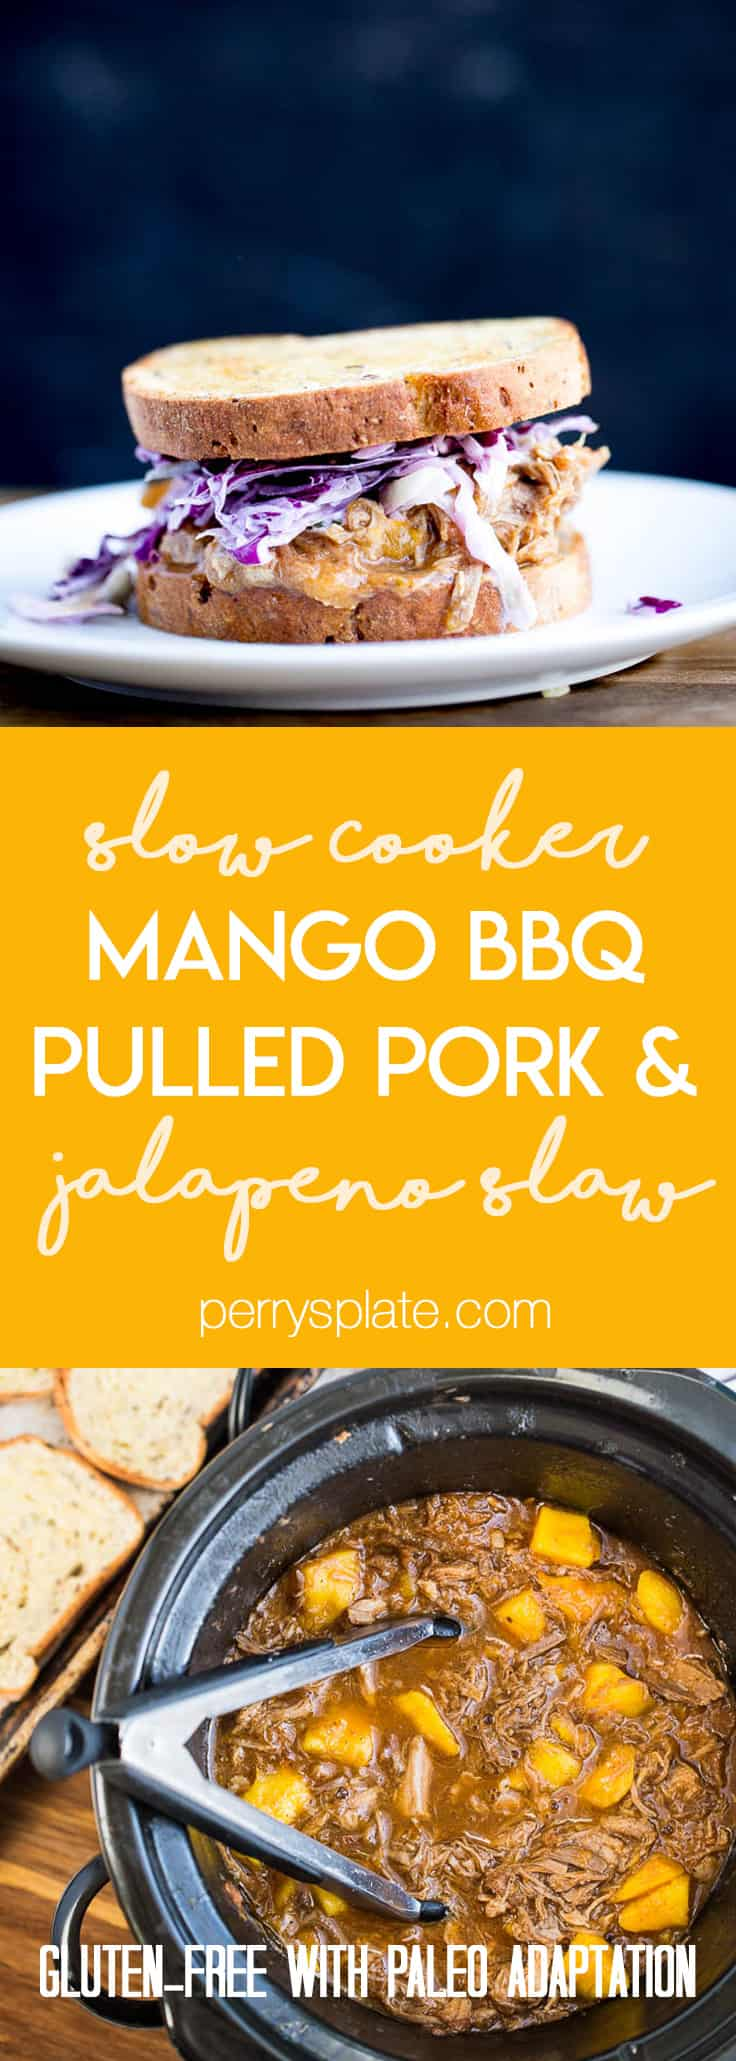 Slow Cooker Mango BBQ Pulled Pork with Jalapeno Slaw -- Perfect for potlucks or a weeknight summer meal! Easily made Paleo-friendly.   PerrysPlate.com